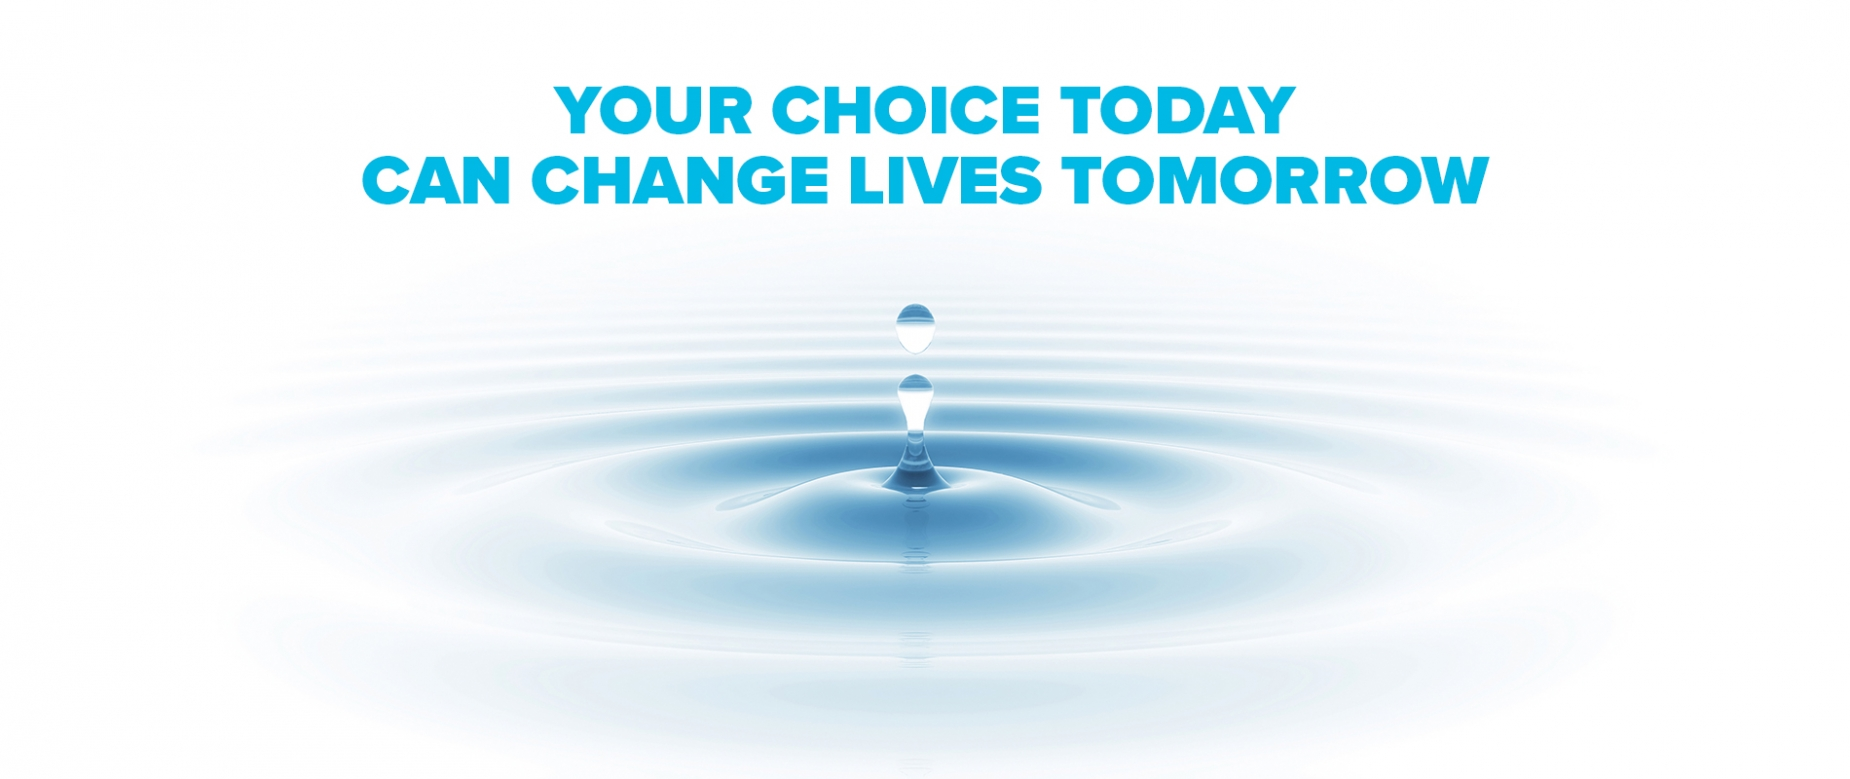 Your choice today can change lives tomorrow.